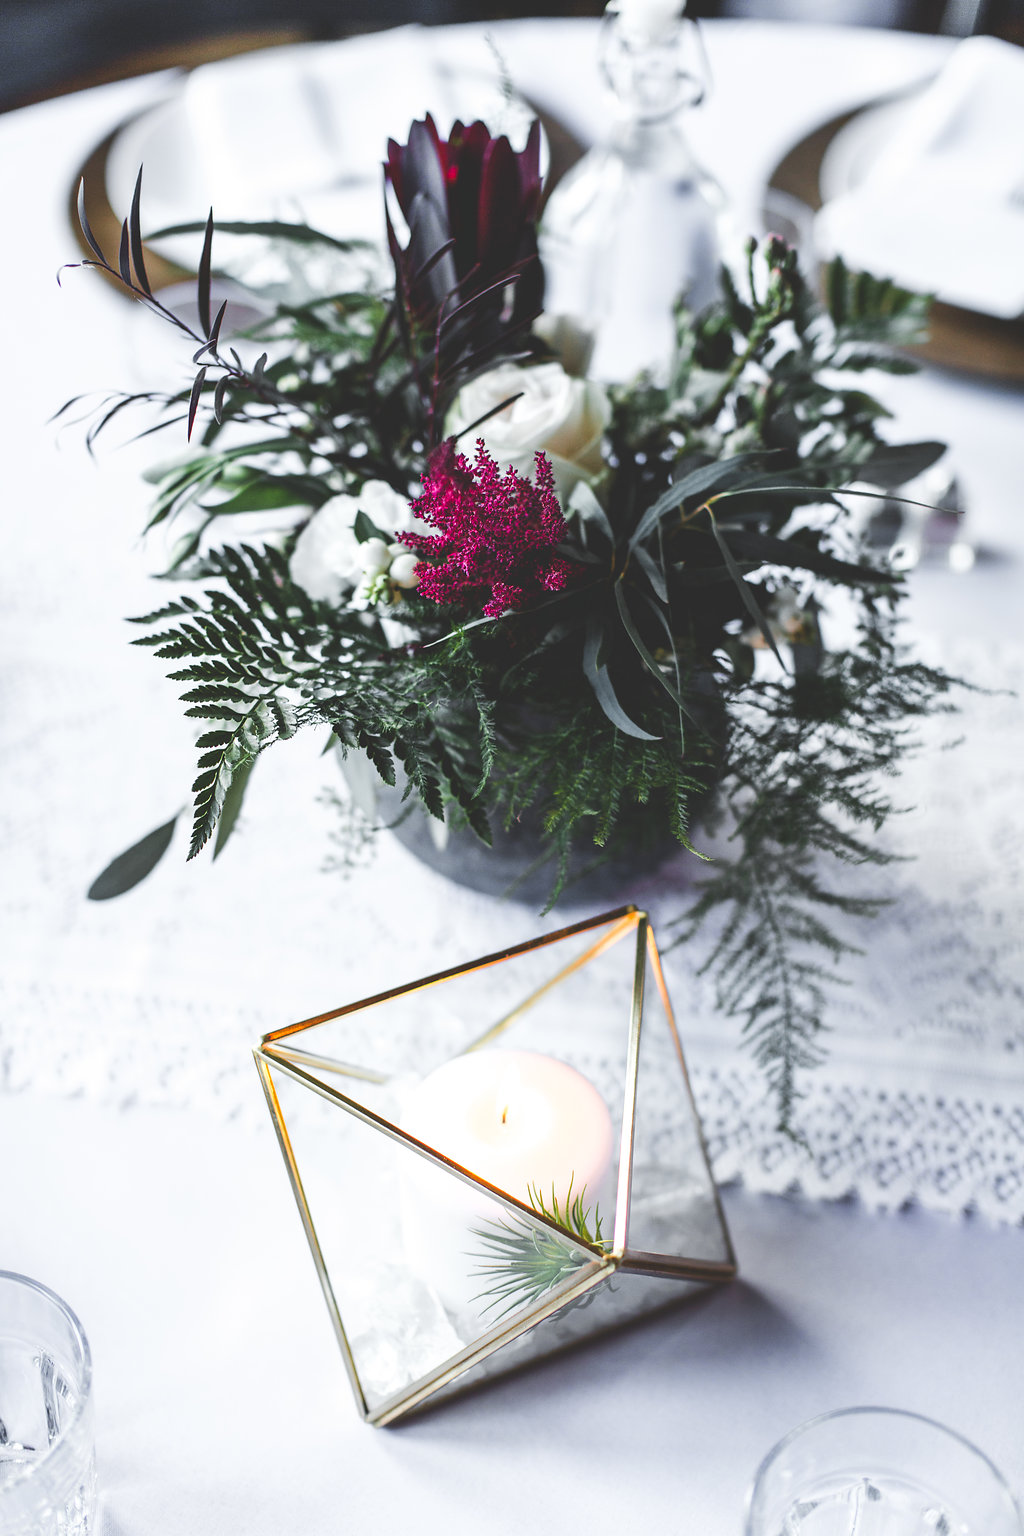 geo candle holder with air plant   concrete plant holders with ferns   diy wedding decor   wood chargers   Aaron Rice Photography   Sixpence Events day of coordinating